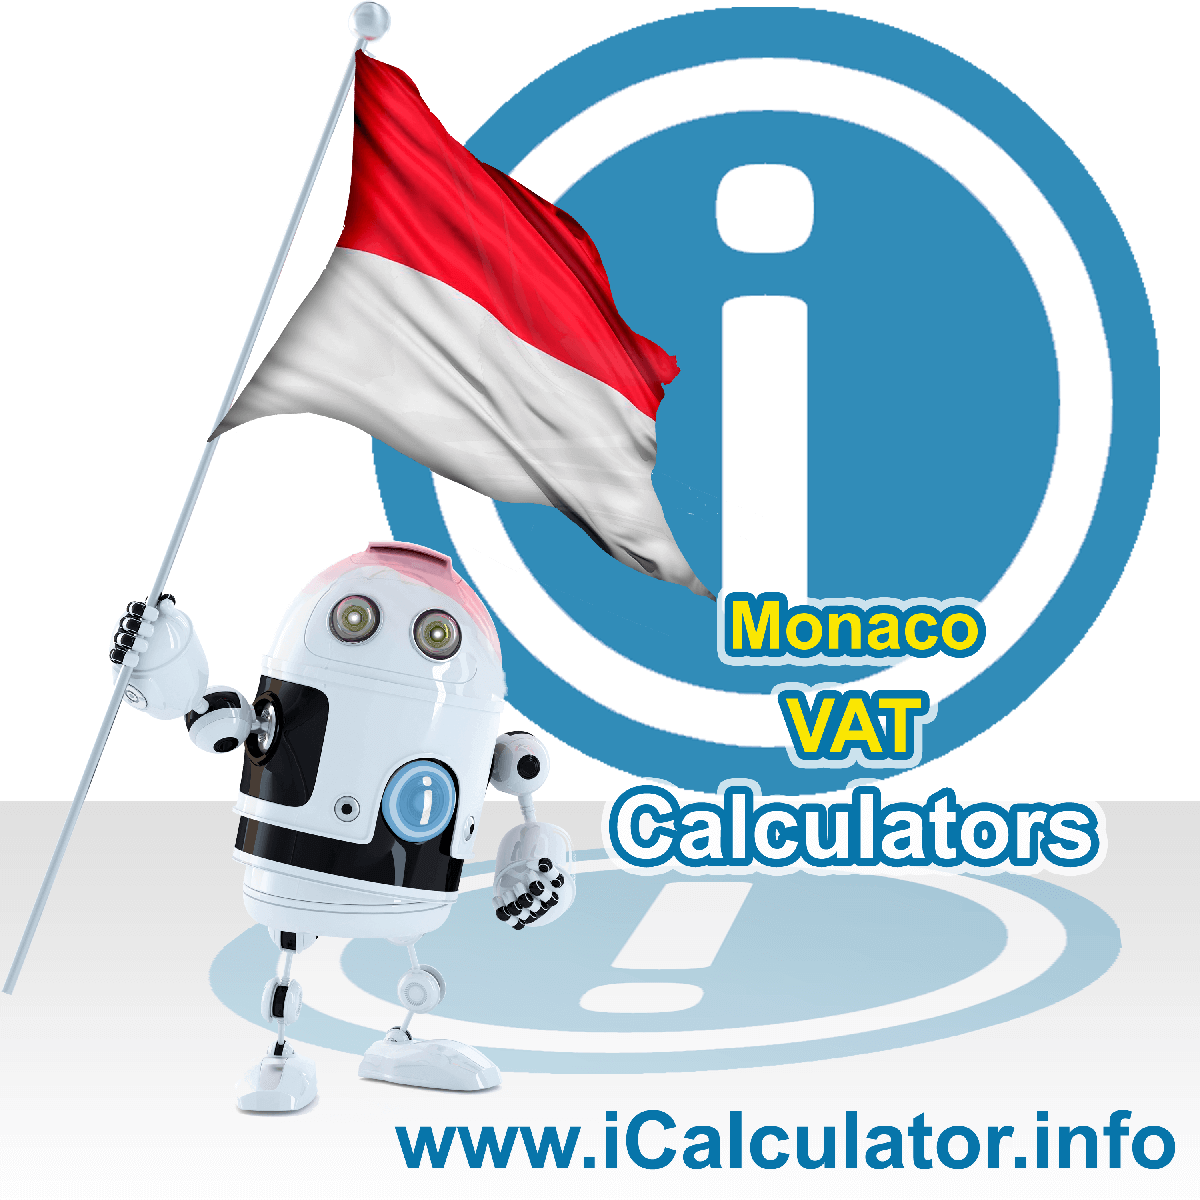 Monaco VAT Calculator. This image shows the Monaco flag and information relating to the VAT formula used for calculating Value Added Tax in Monaco using the Monaco VAT Calculator in 2020